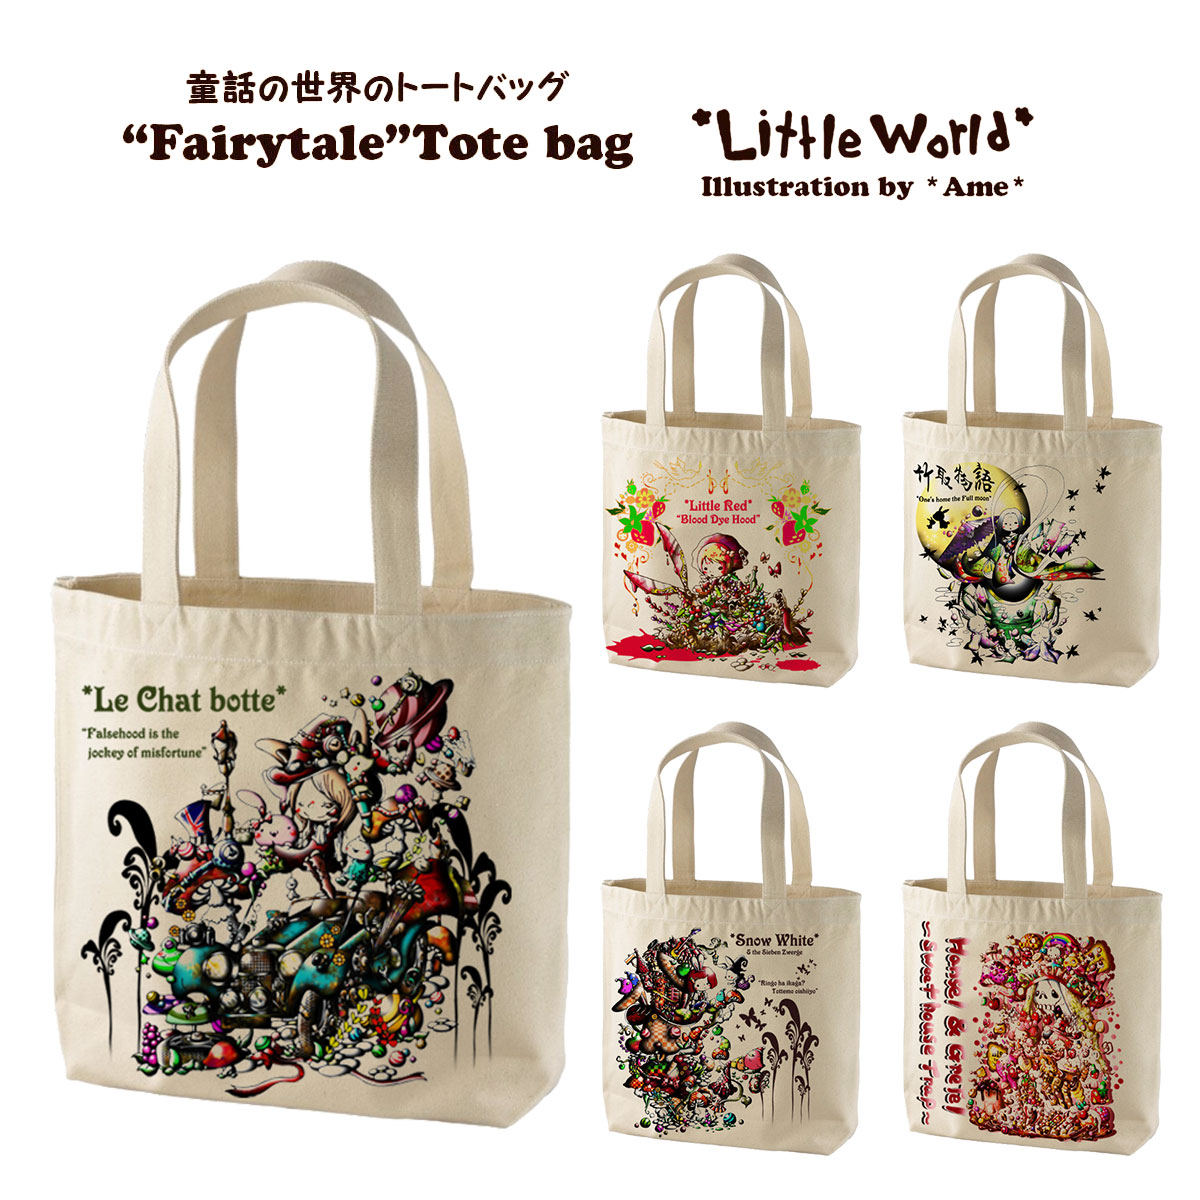 Little World tote bag bag illustration writer Alice little world 25-bg02